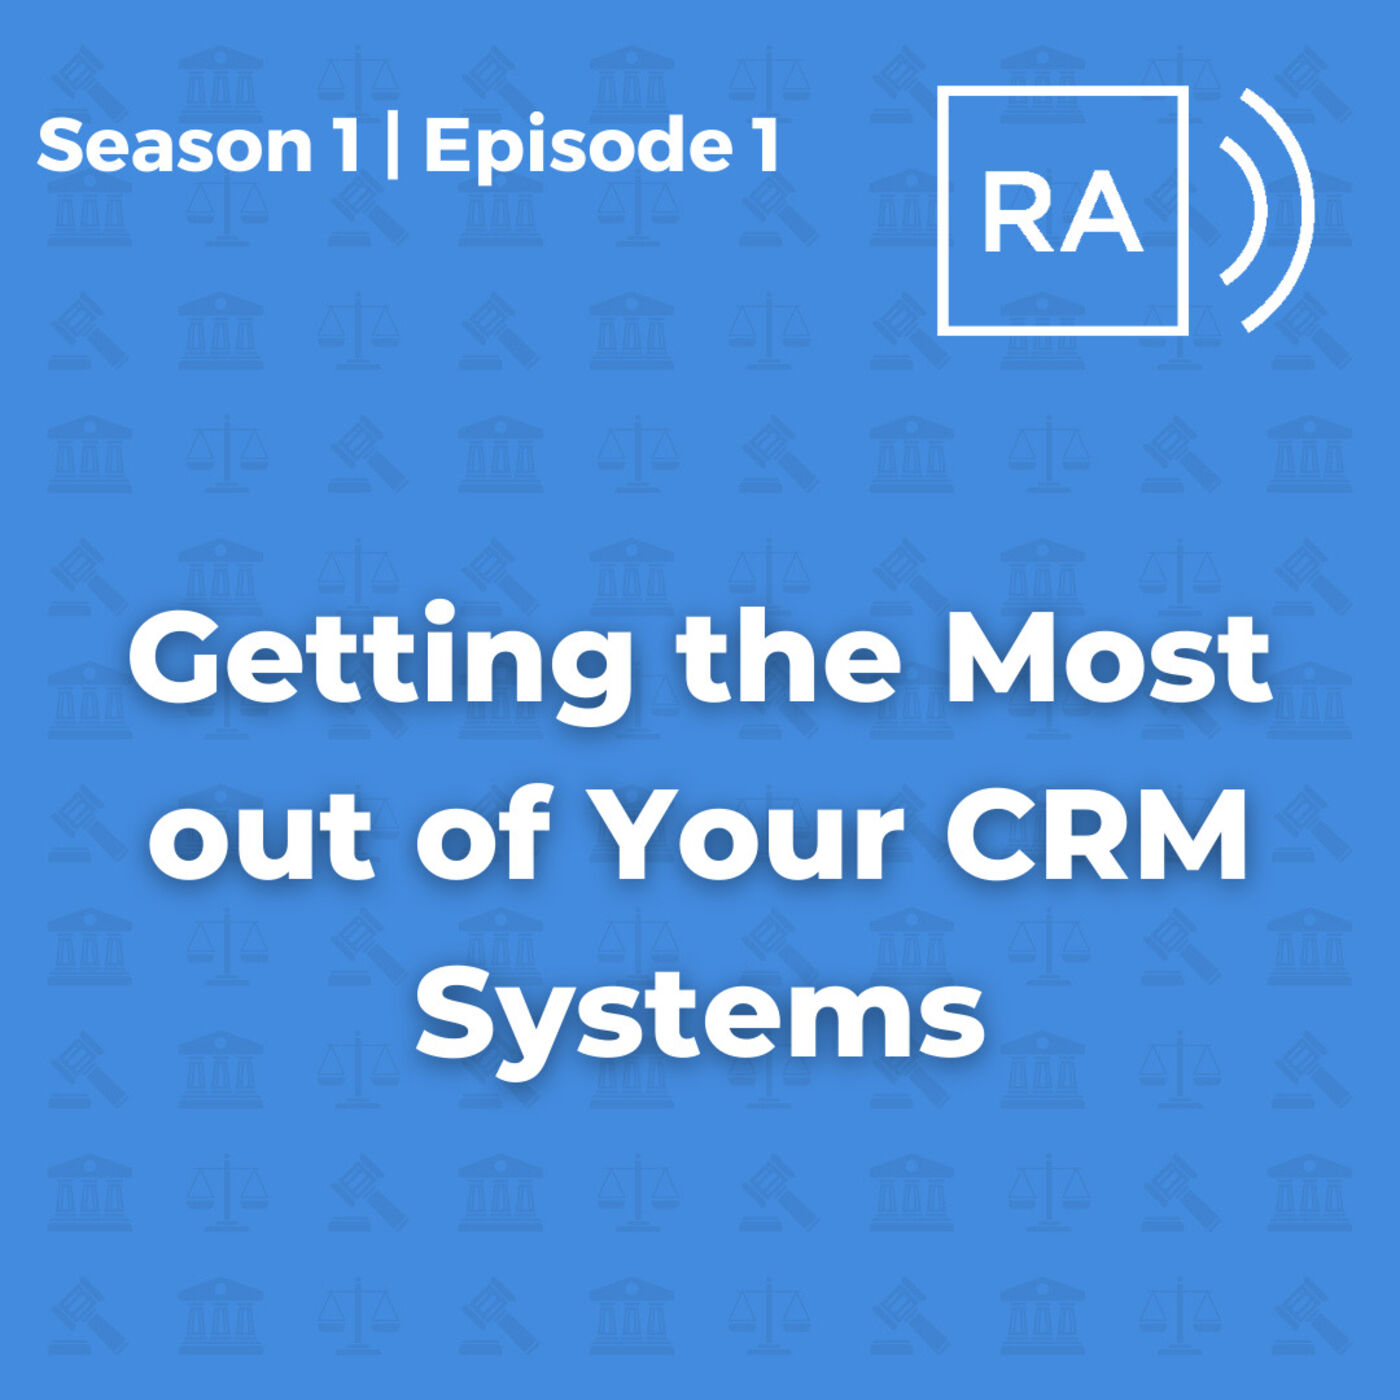 Getting the Most out of Your CRM Systems